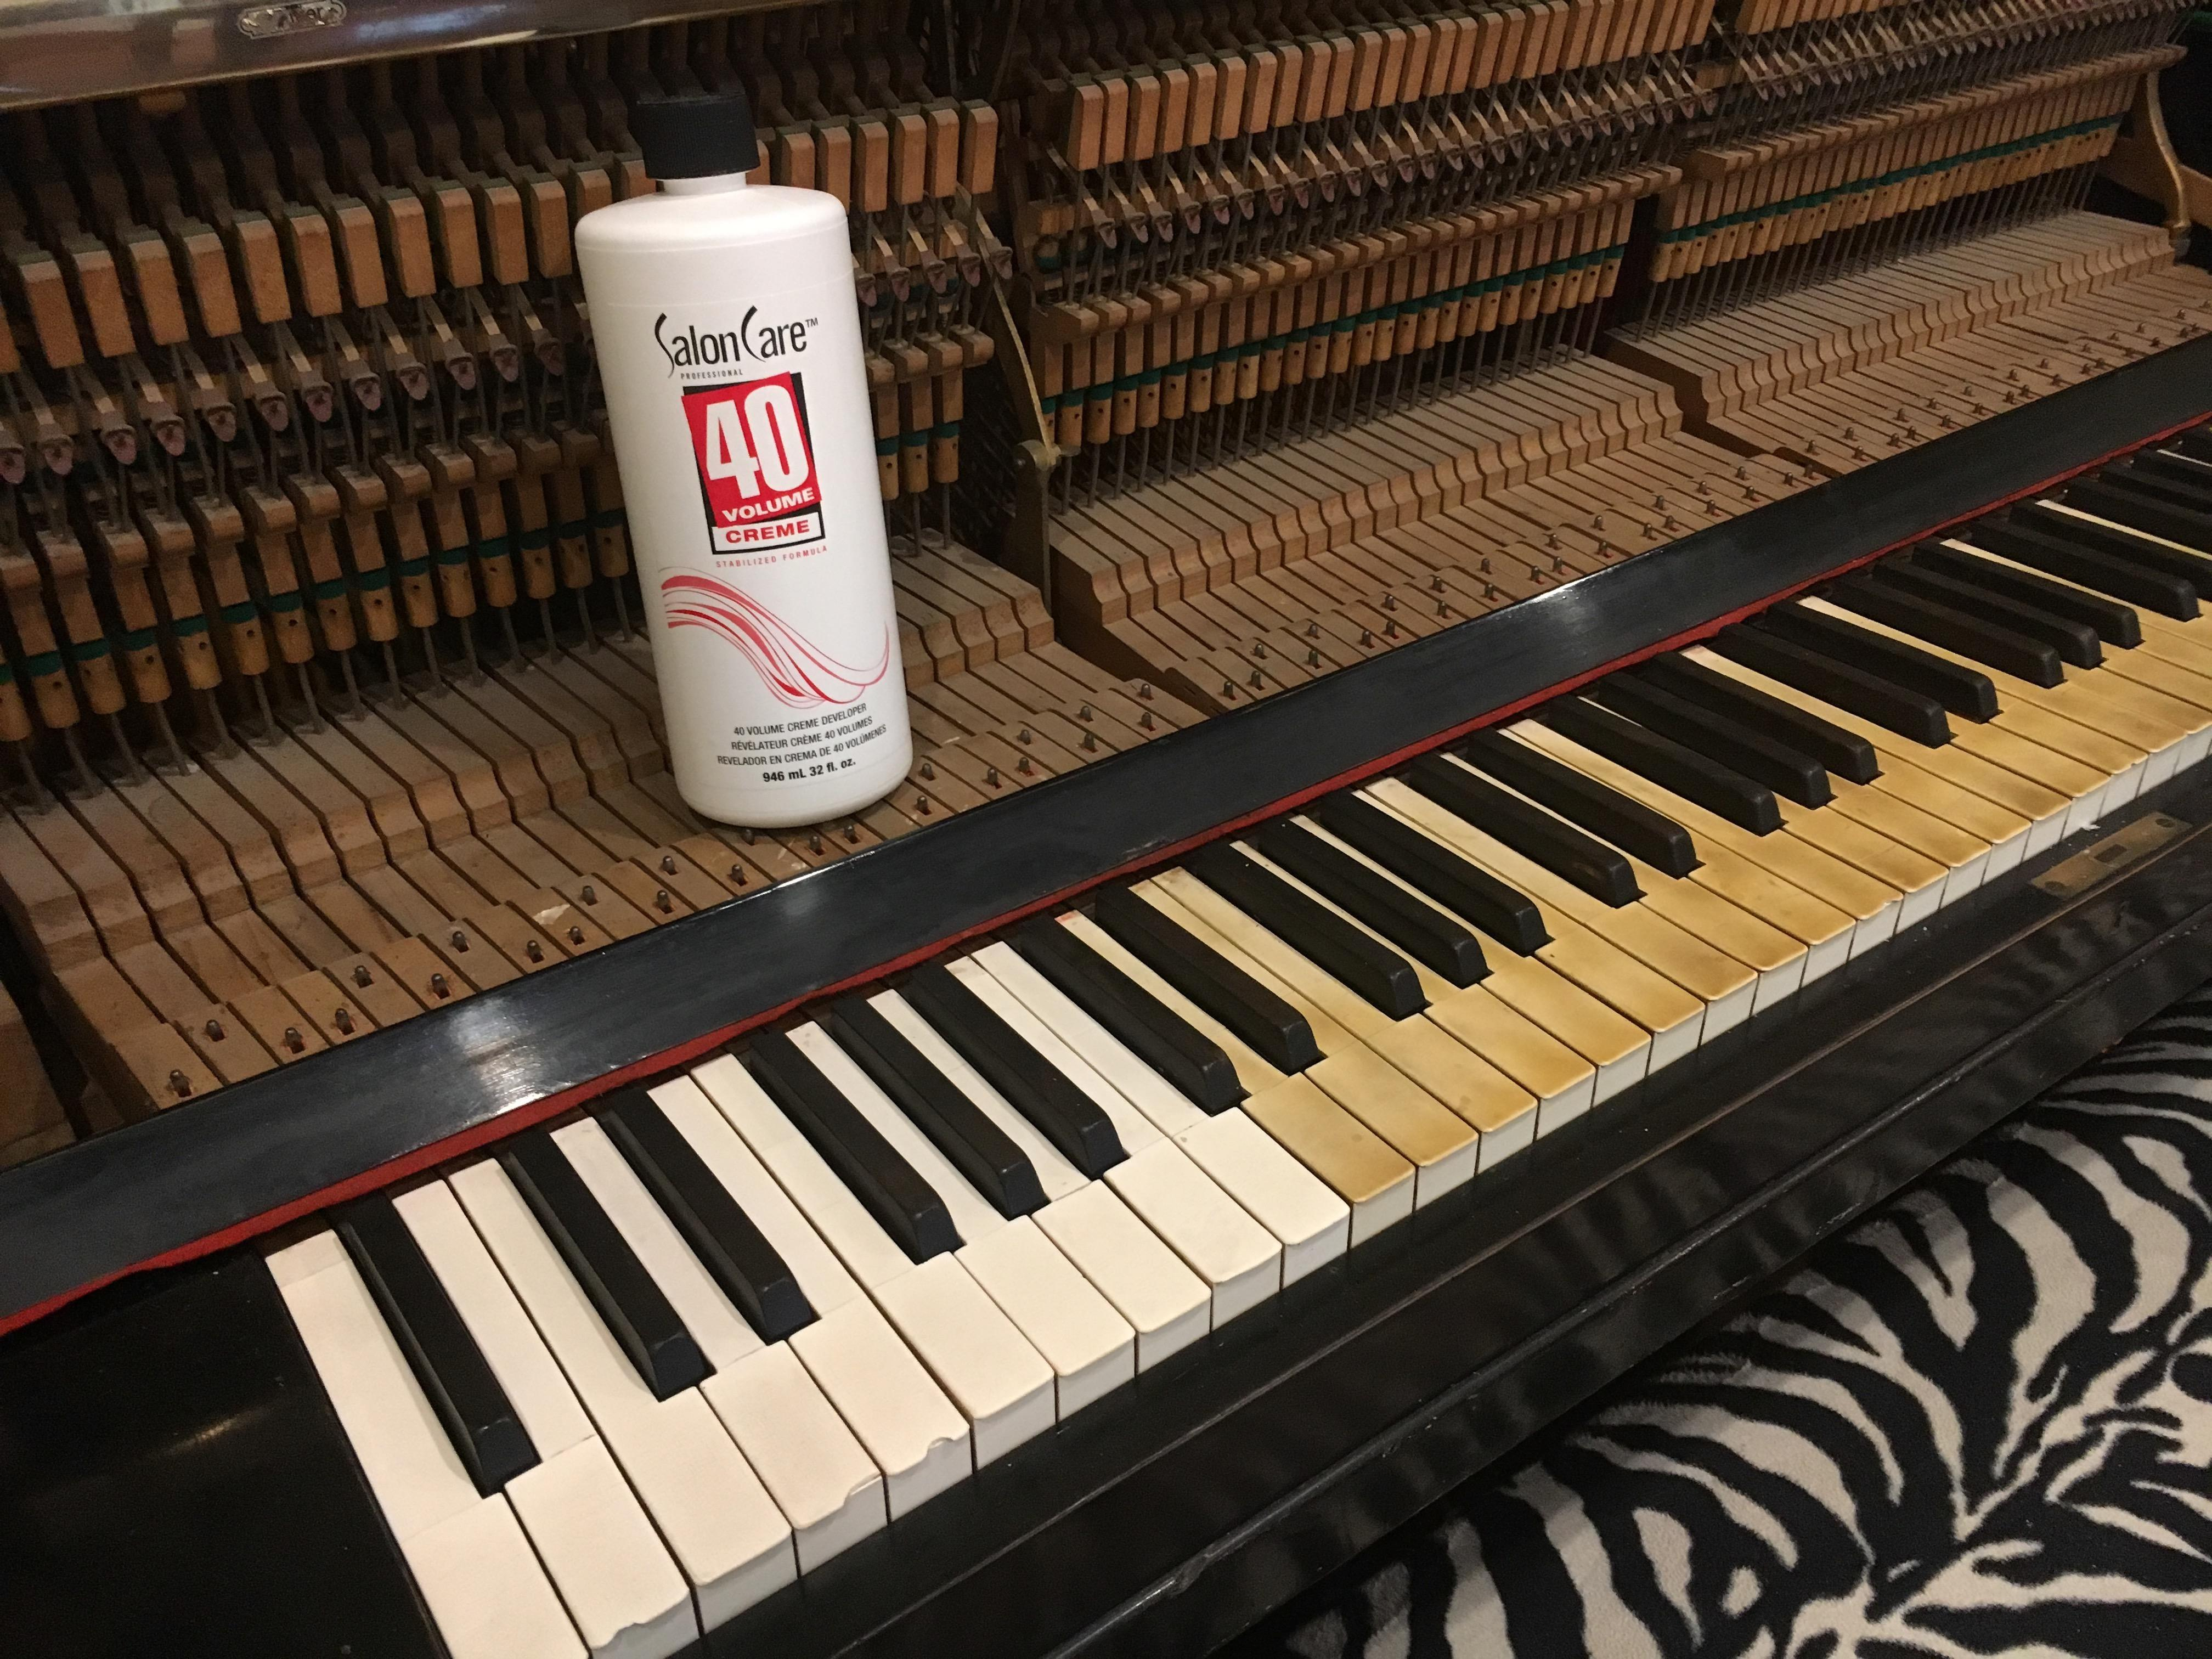 Salon Creme I M Cleaning Up The Keys Of My Old Piano Using Salon Care 40